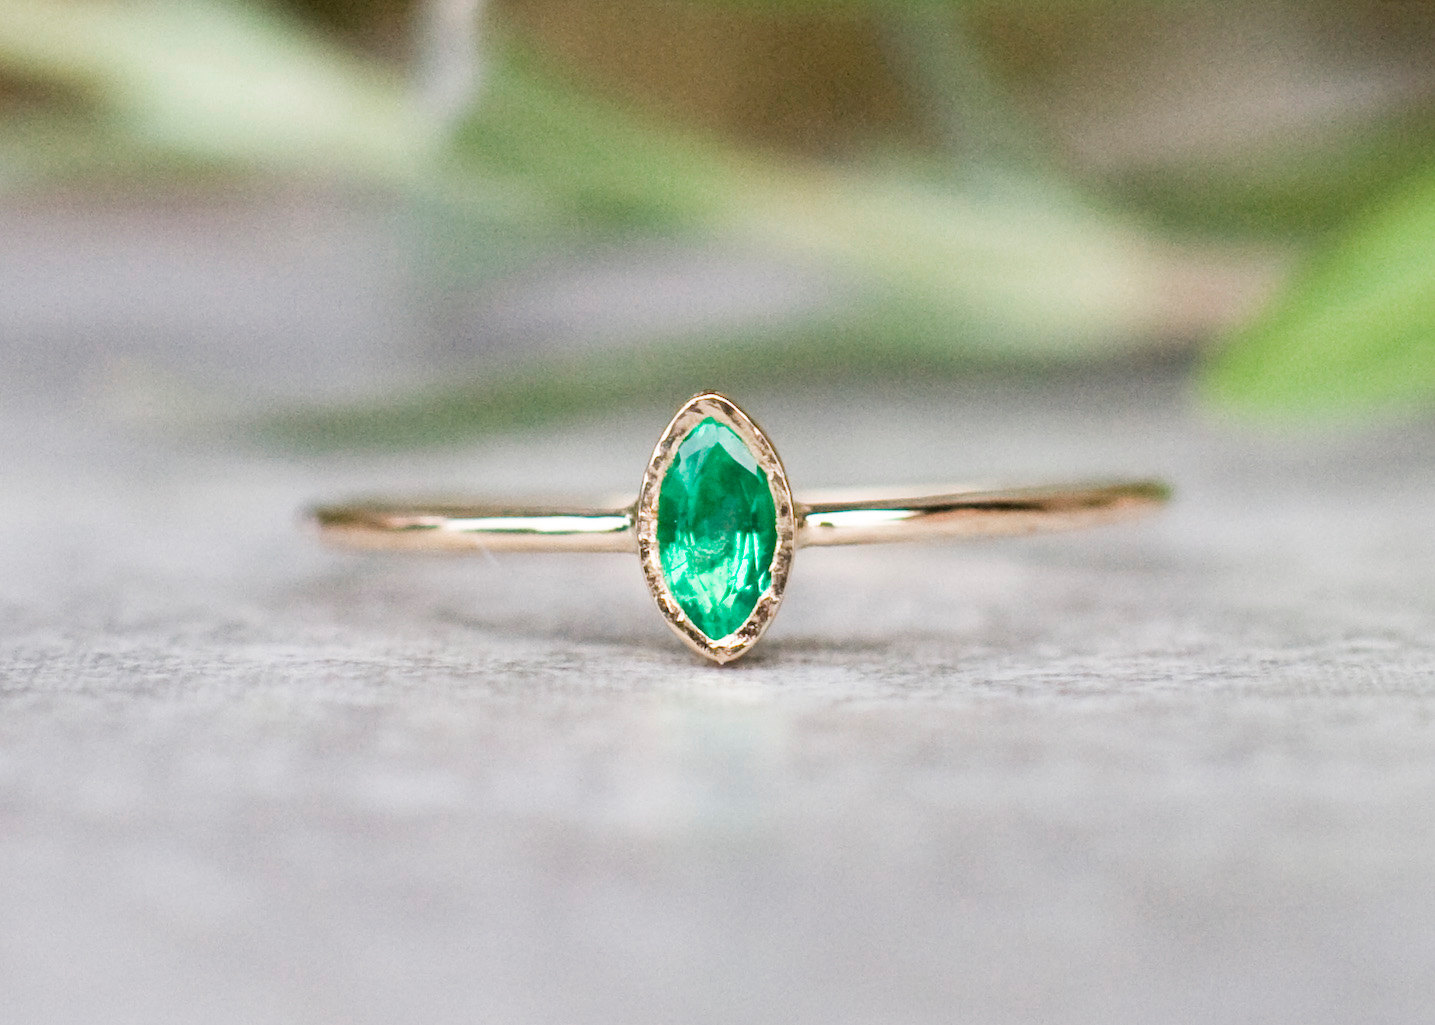 bridal emerald engagement the hendricks accessories davie products rings chiyo diamond gemstone vancouver ring jewellery vintage